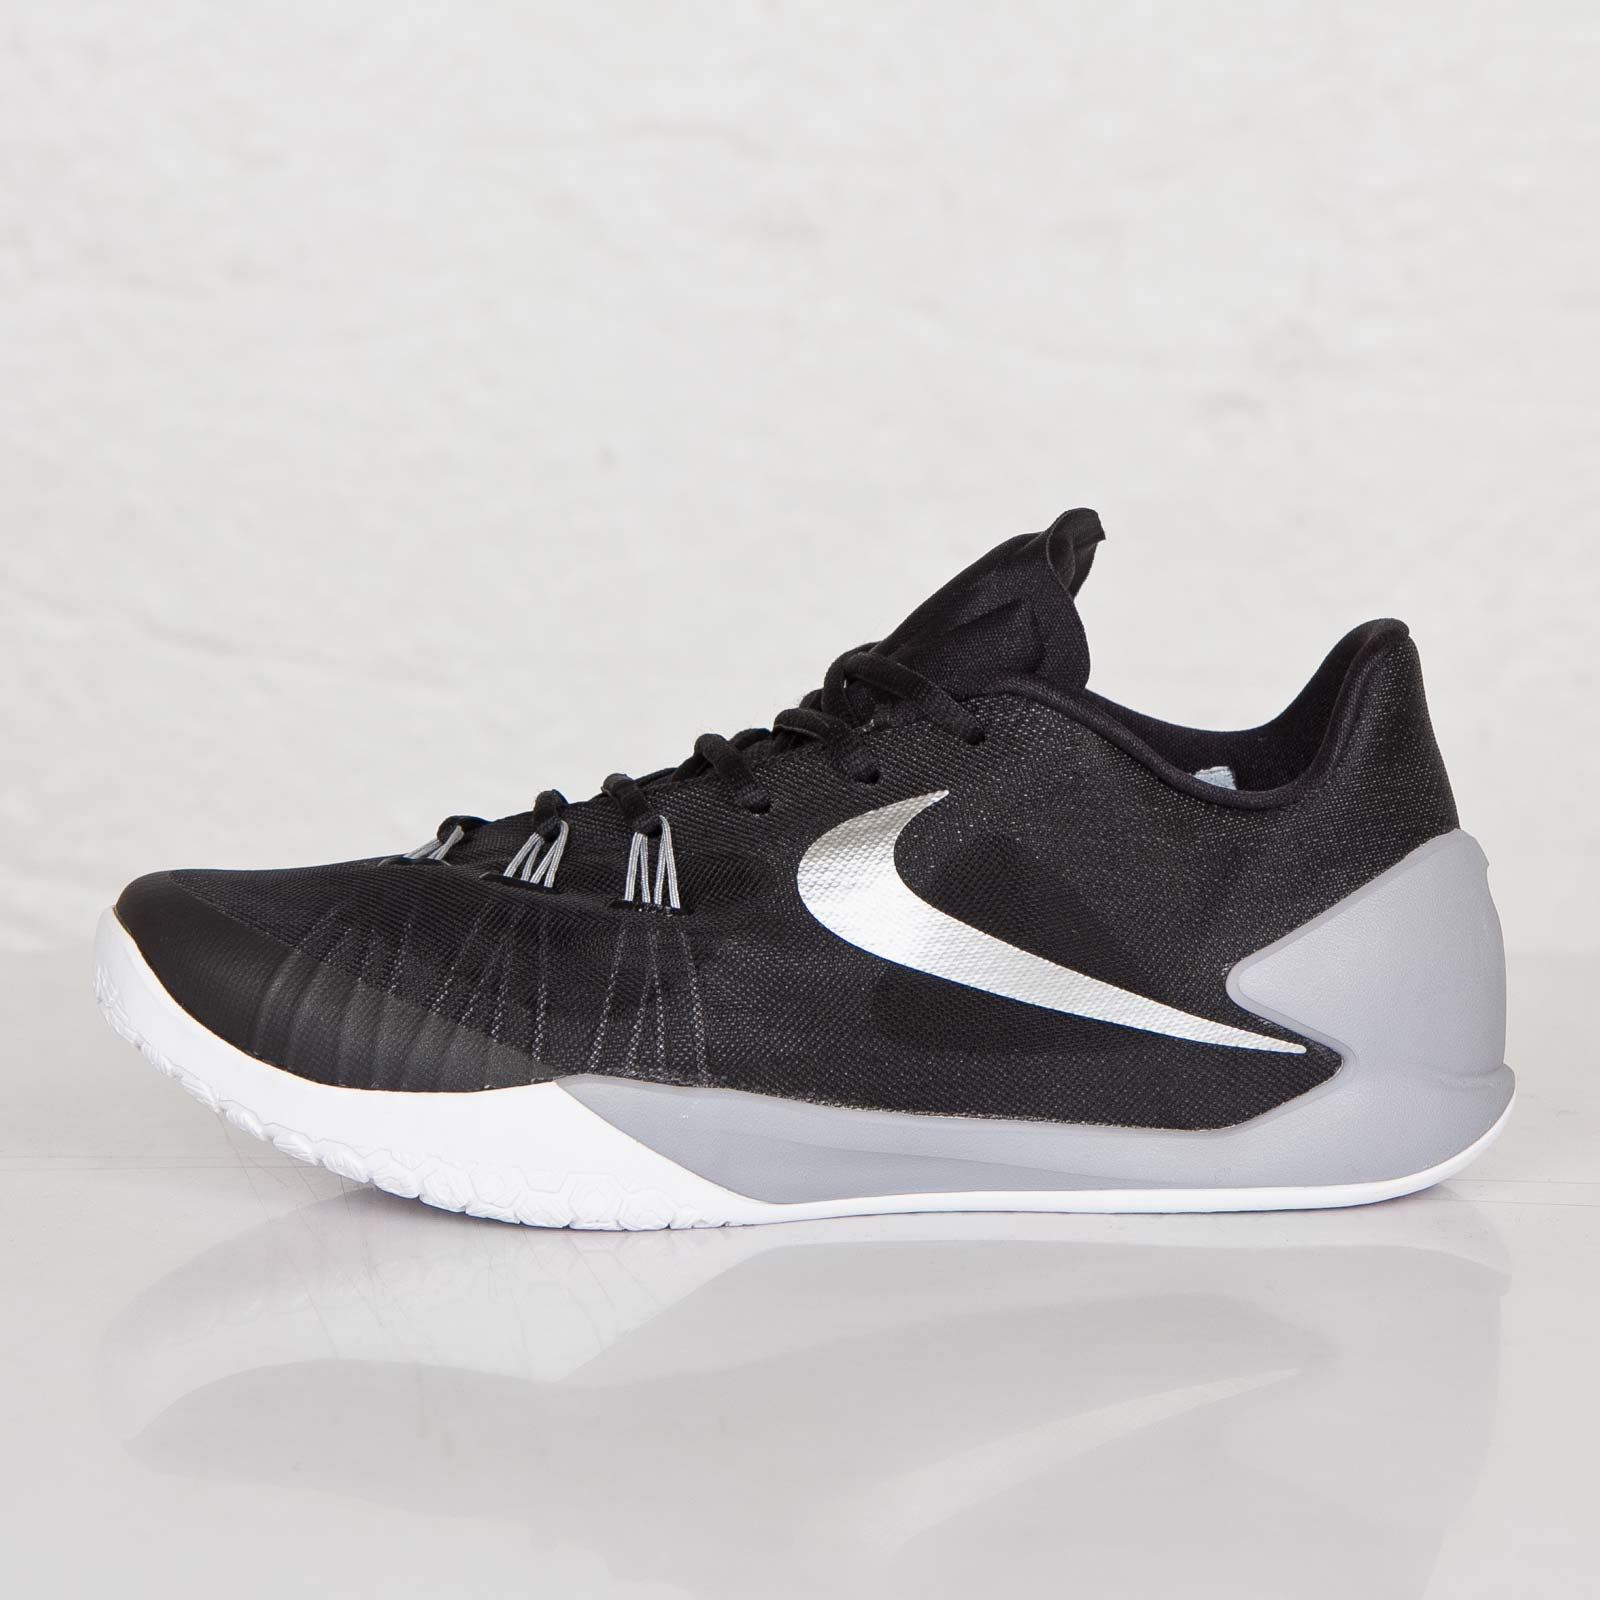 For Sale Nike HyperChase Cheap sale Wolf Grey White Black 705363